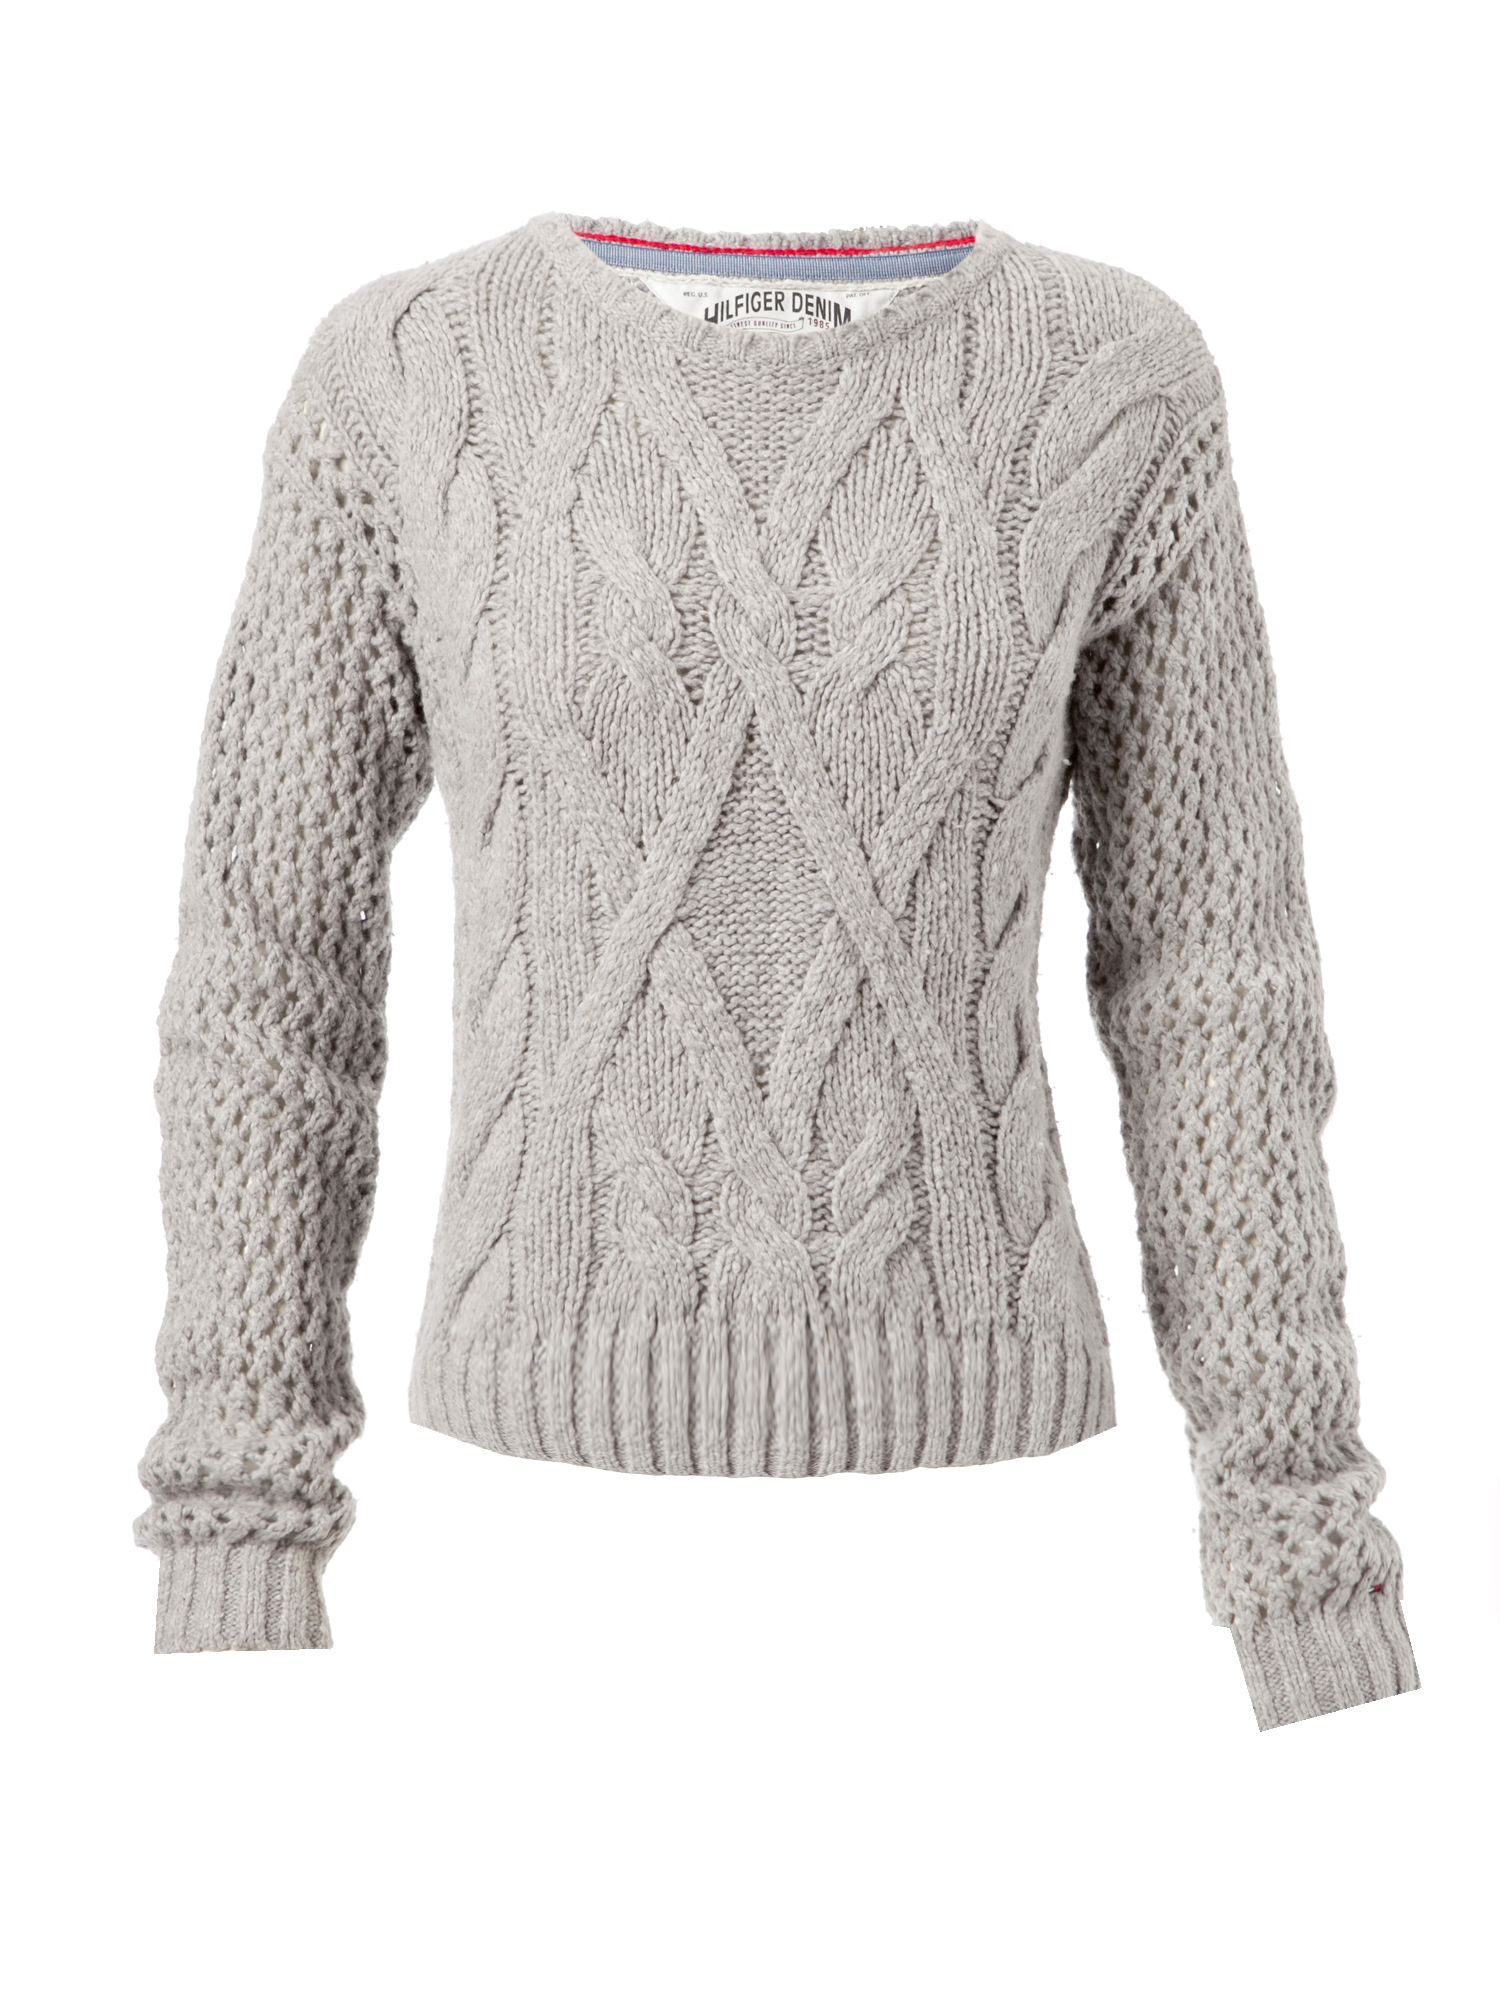 cable knit jumper gallery. previously sold at: house of fraser · womenu0027s cable knit sweaters GJURFKR